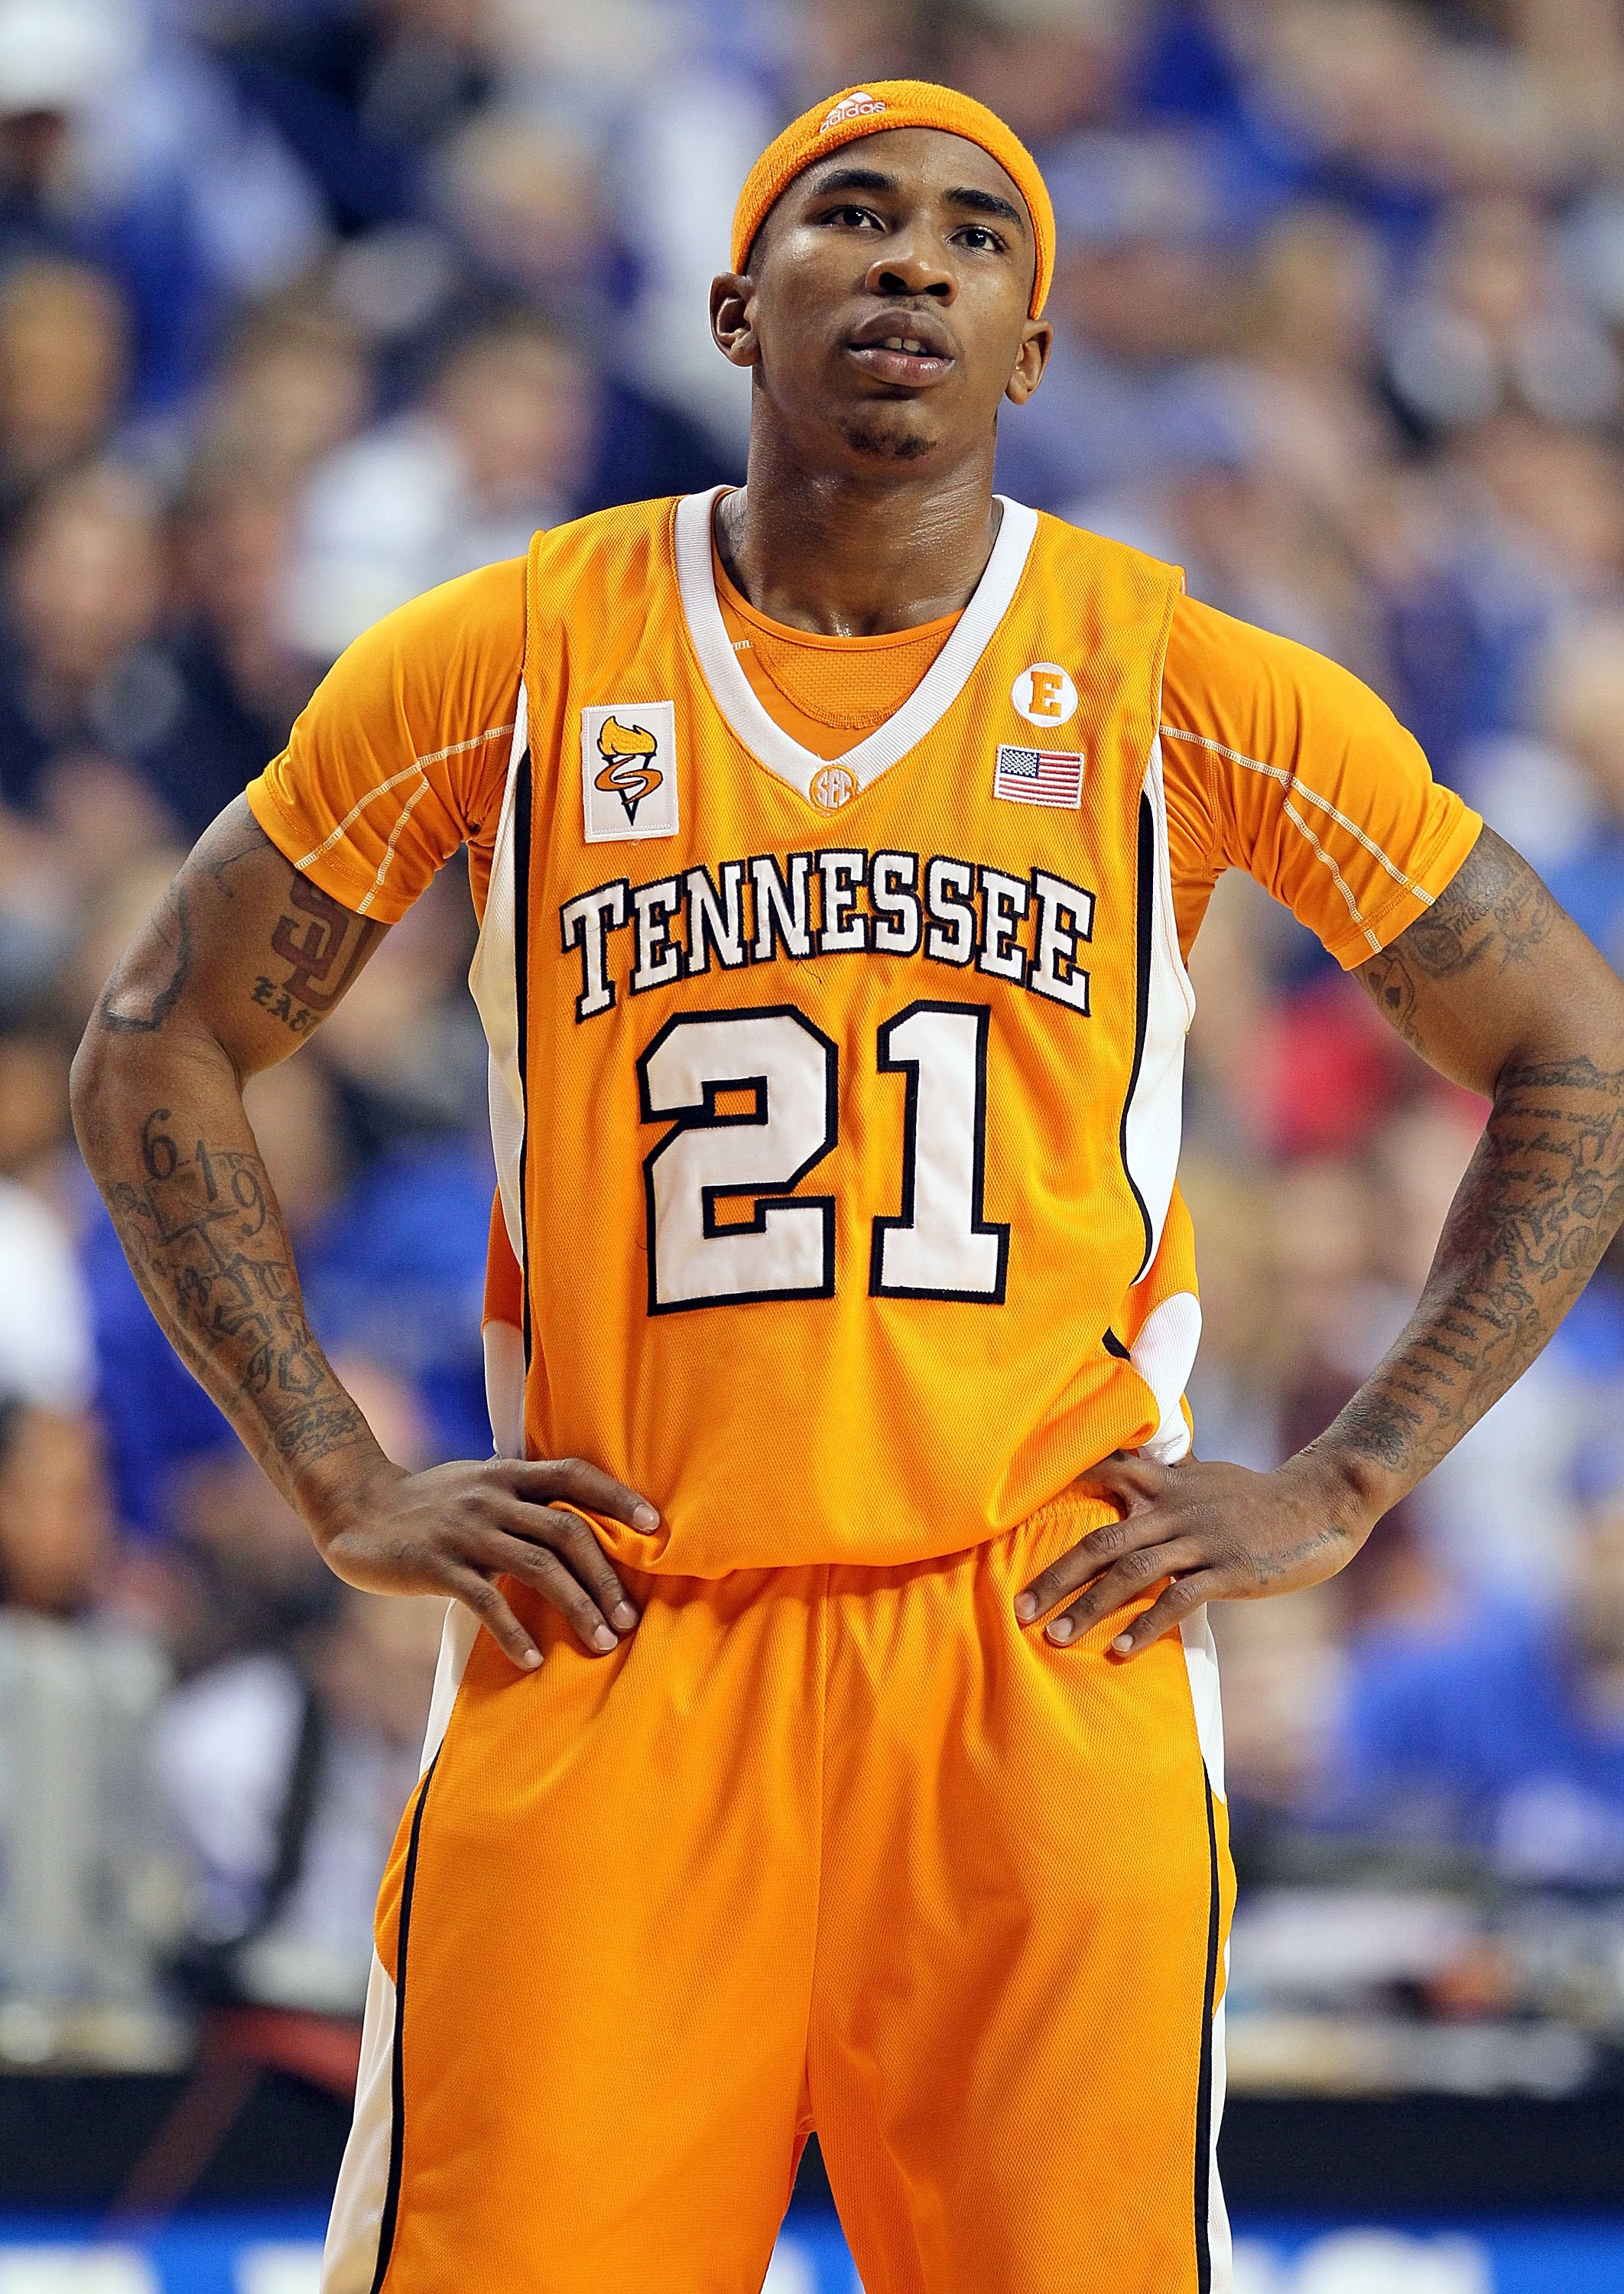 LEXINGTON, KY - FEBRUARY 13:  Melvin Goins #21 of the Tennessee Volunteers looks on during the SEC game against the Kentucky Wilcats on February 13, 2010 at Rupp Arena in Lexington, Kentucky.  (Photo by Andy Lyons/Getty Images)